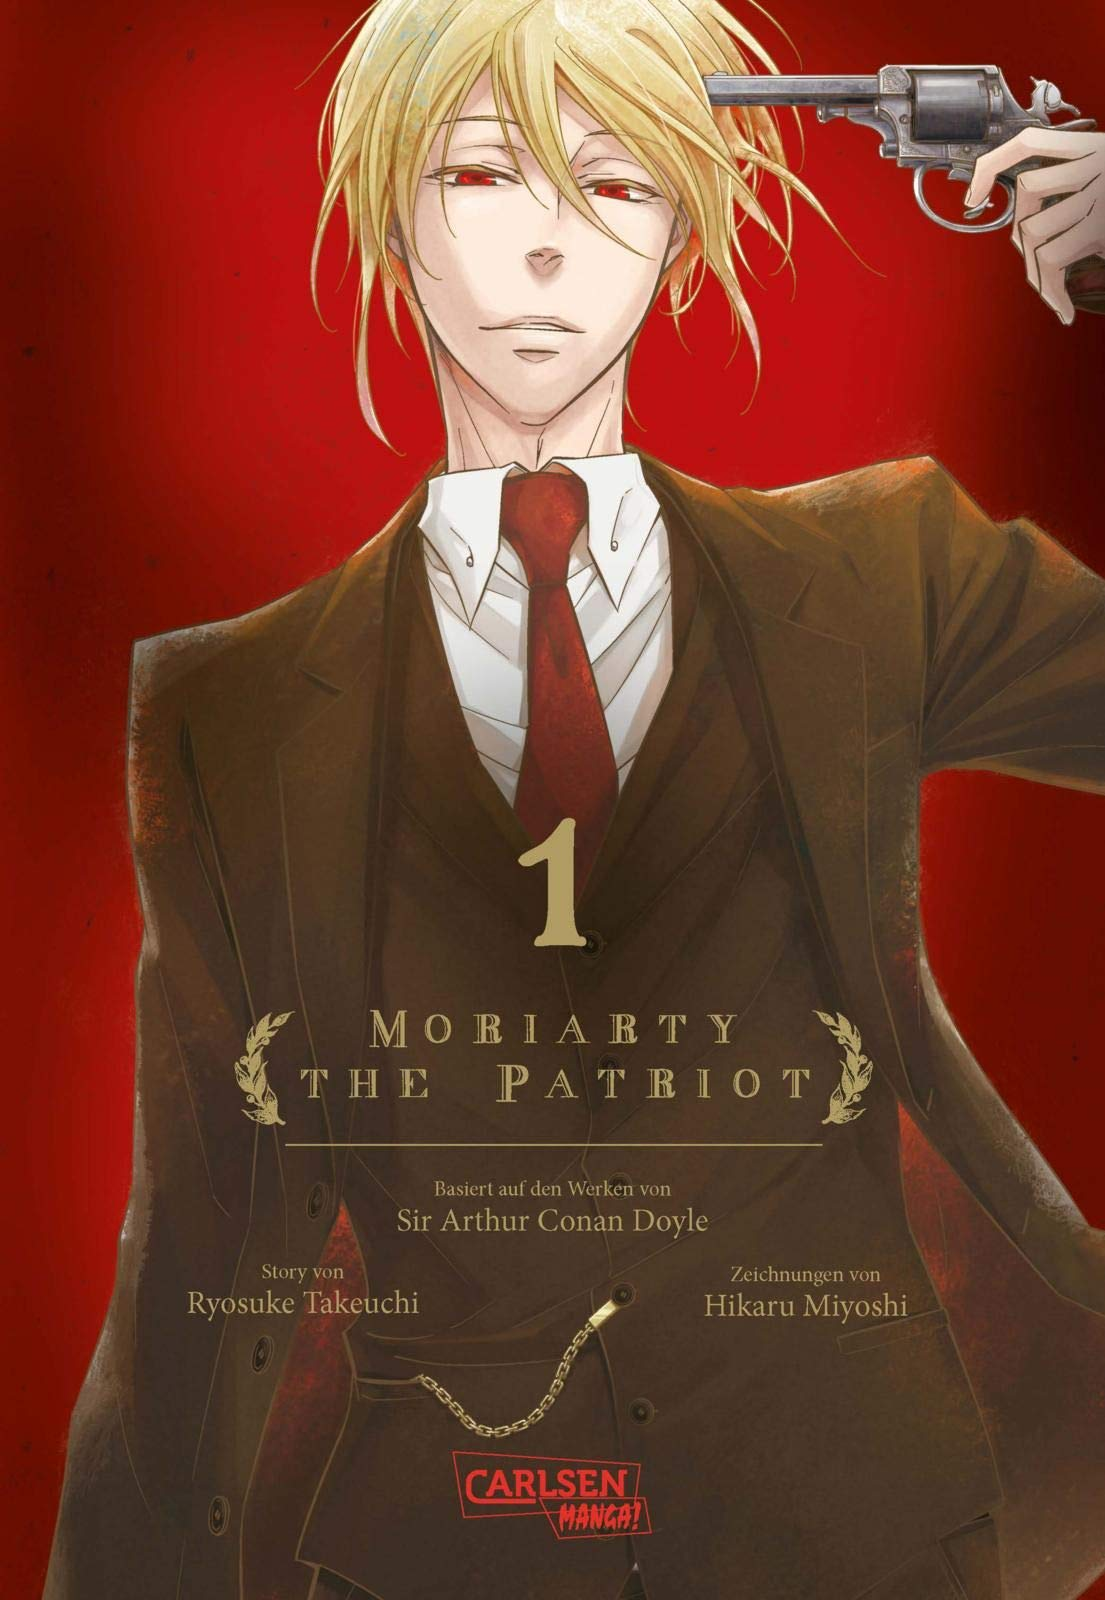 Moriarty the Patriot 1: Takeuchi, Ryosuke: 9783551746467: Amazon.com: Books